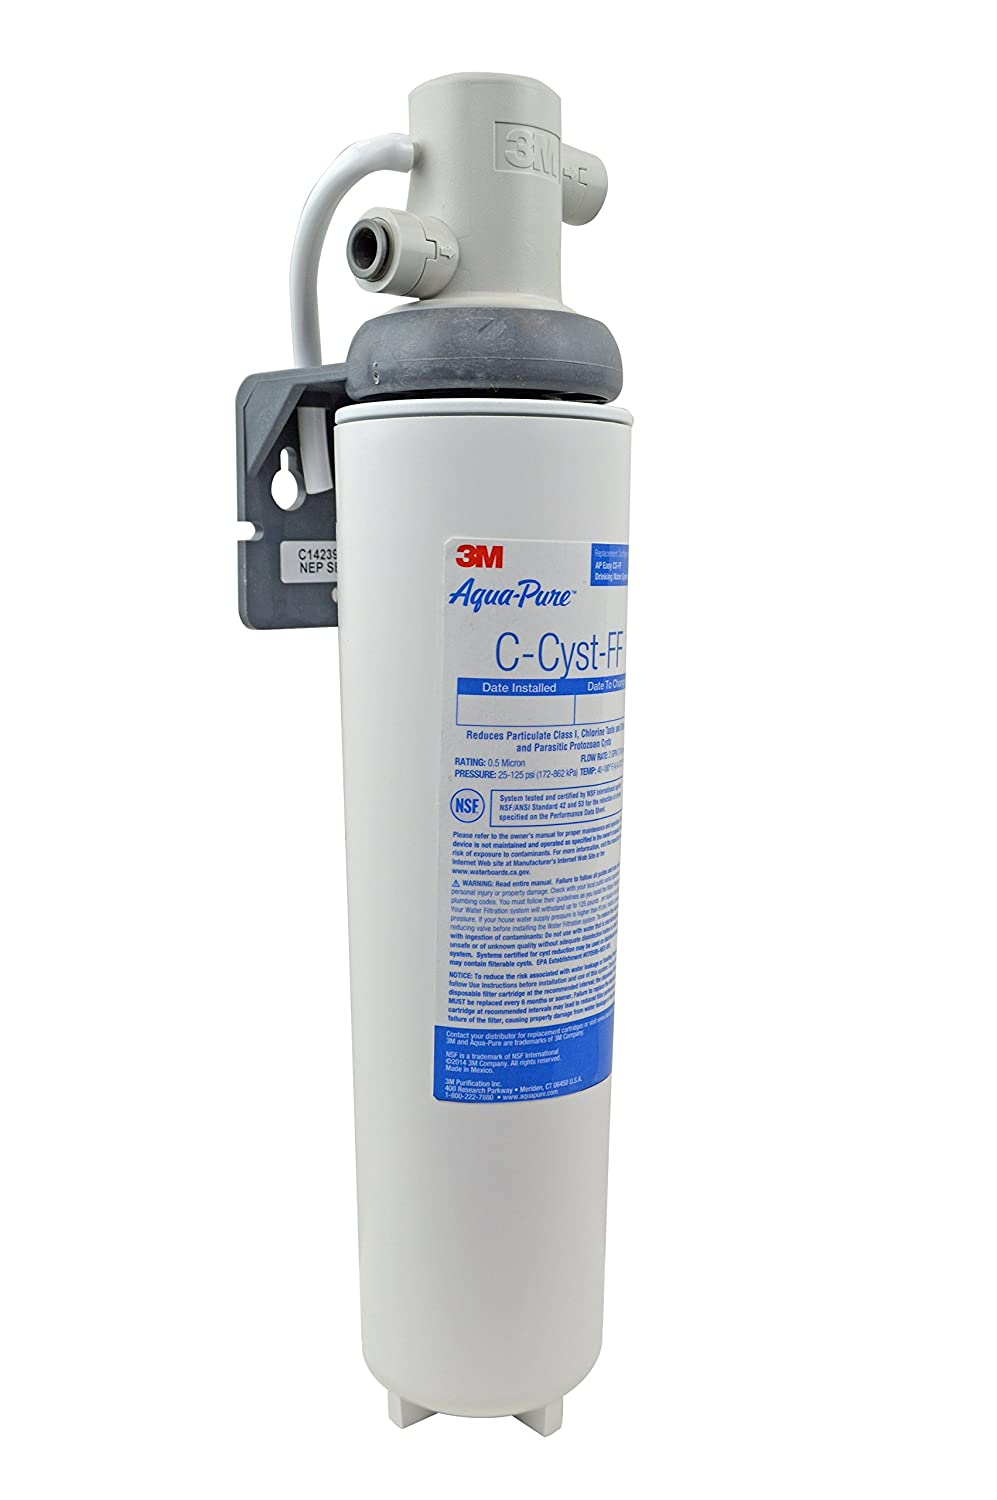 3M Aqua-Pure Under Sink Water Filtration System – Model AP Easy Cyst-FF